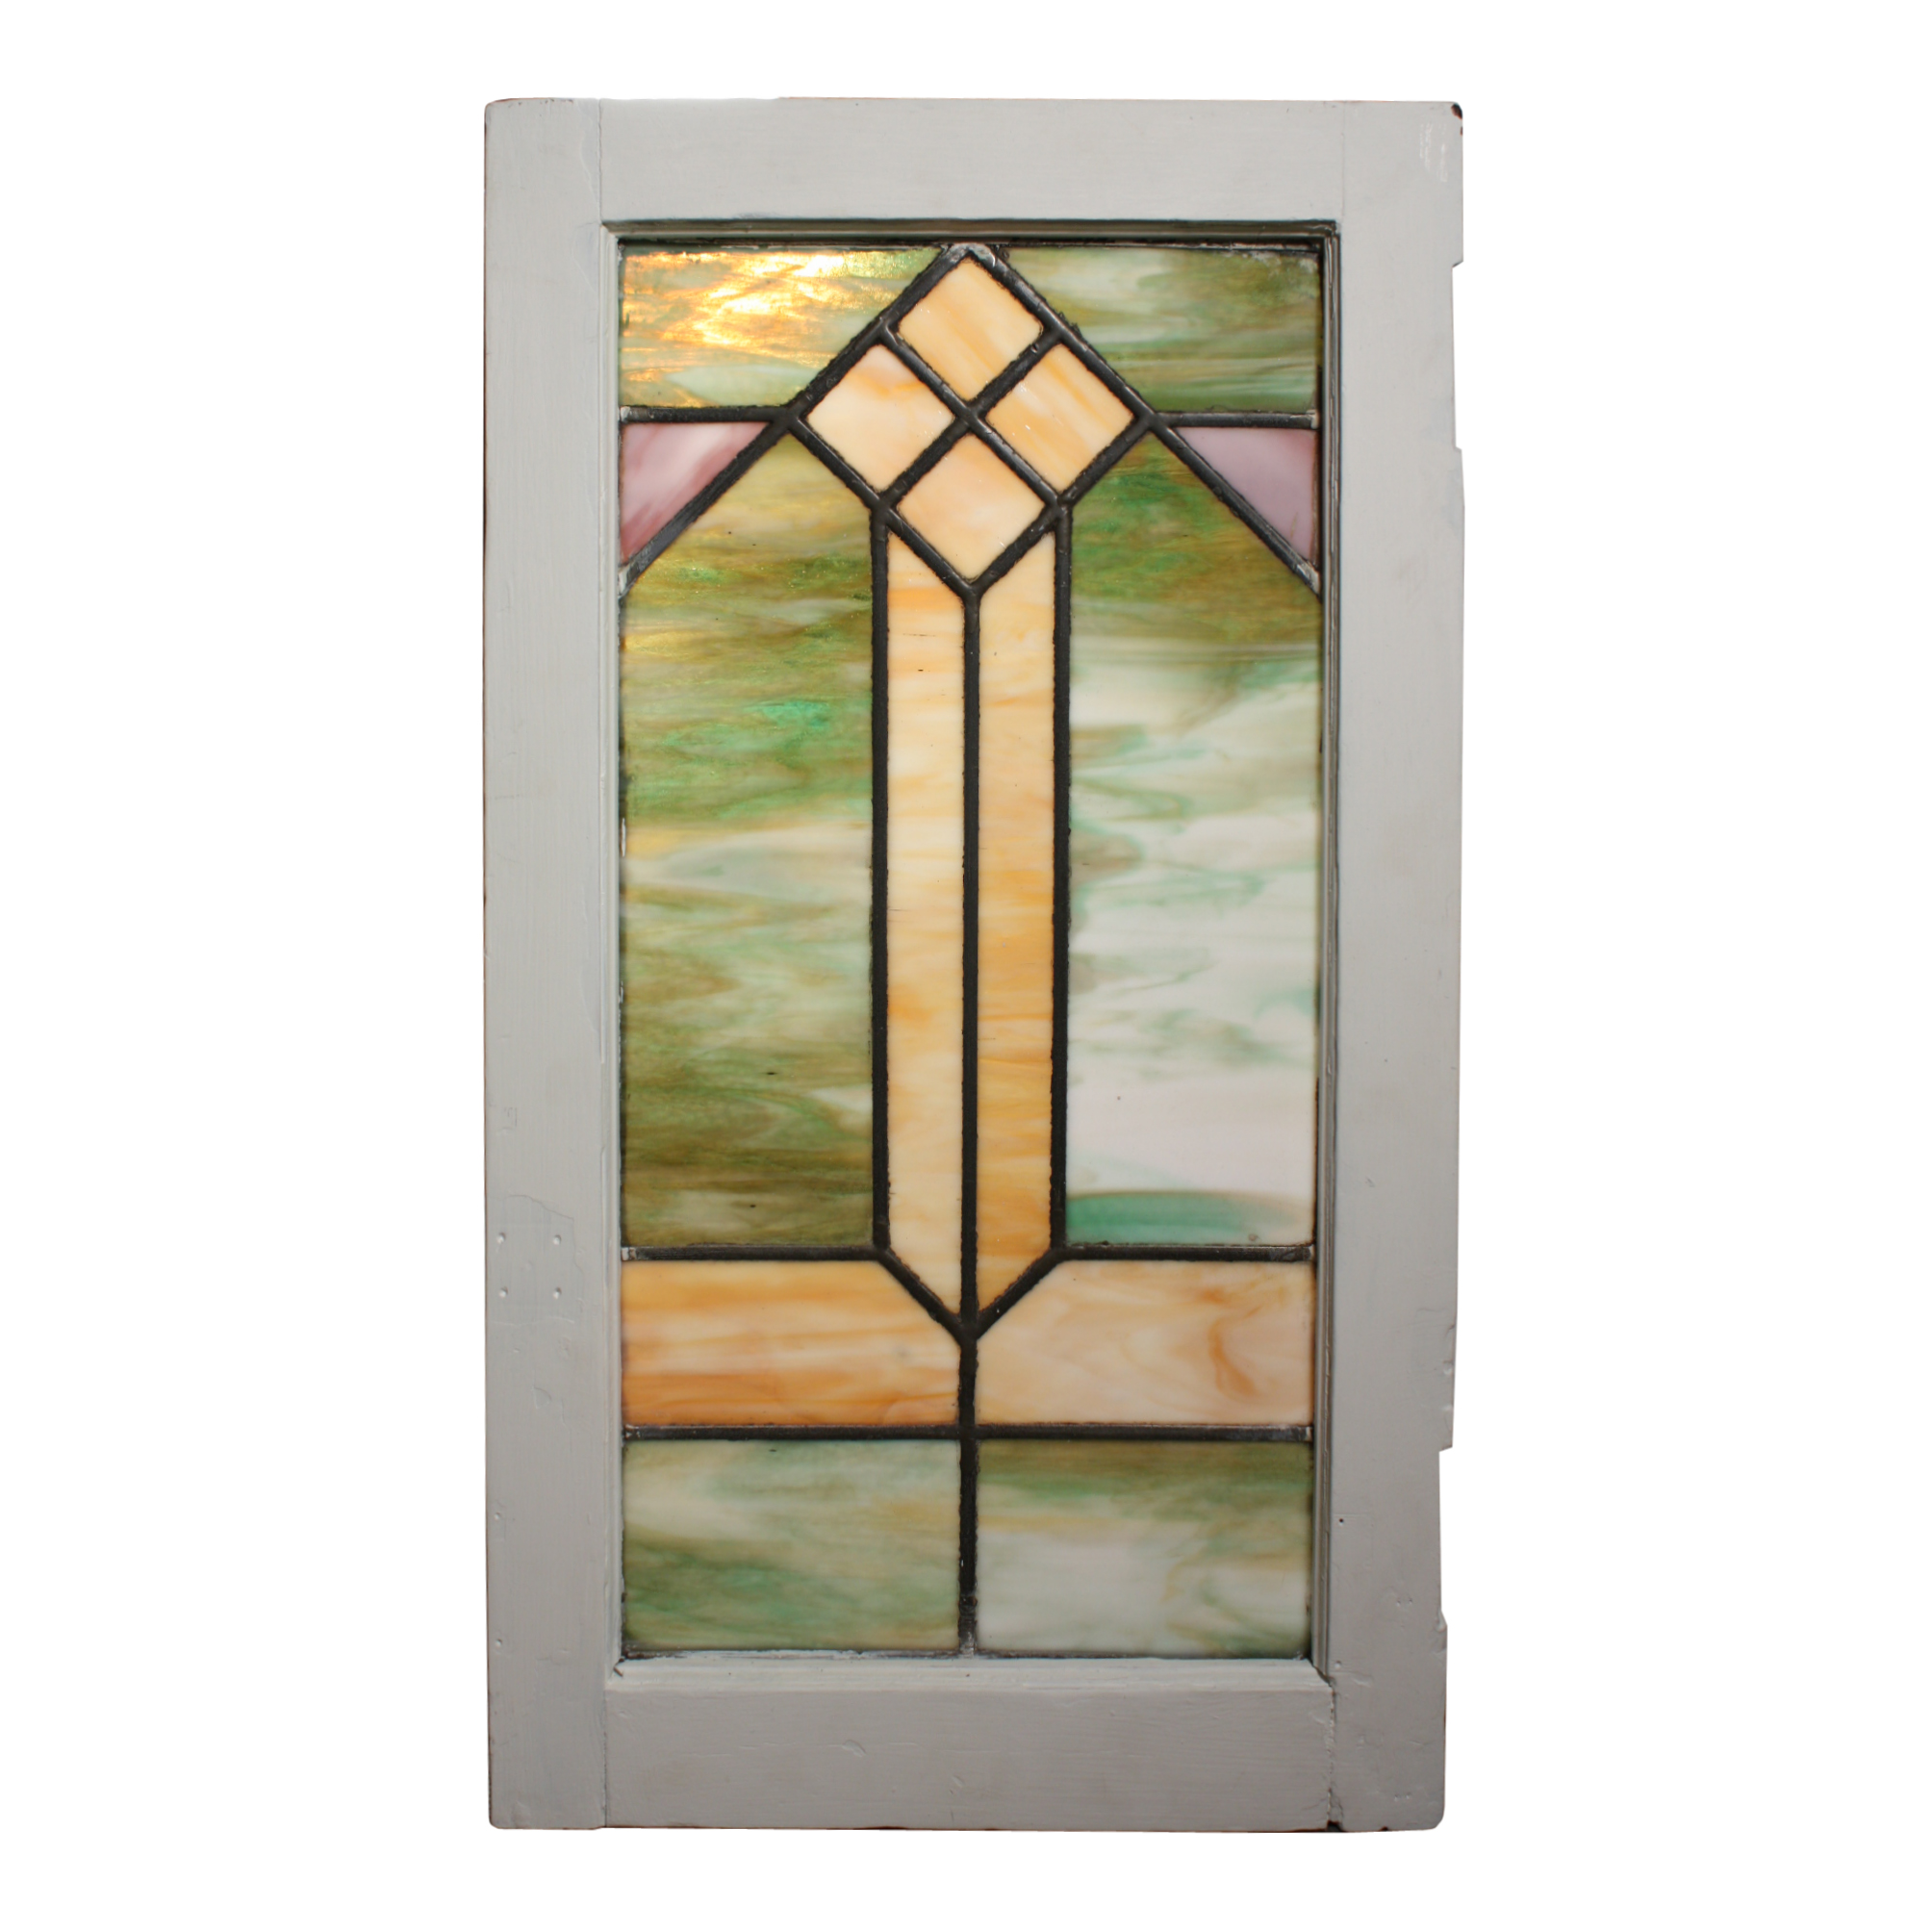 Wonderful antique arts and crafts american stained glass for 1900 stained glass window